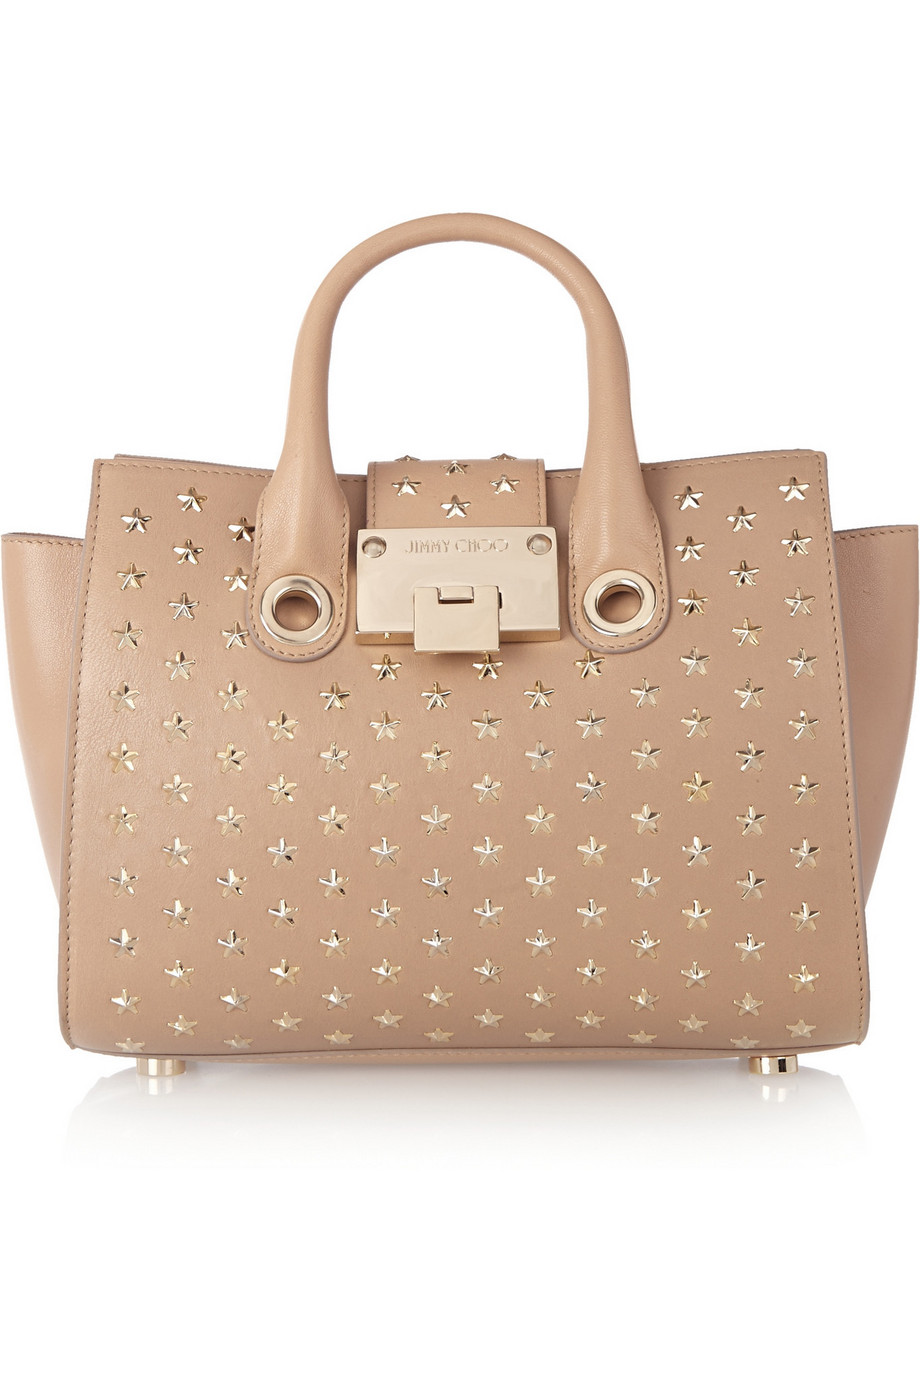 Jimmy Choo Riley Studded Leather Shoulder Bag, Neutral, Women's, Size: One Size